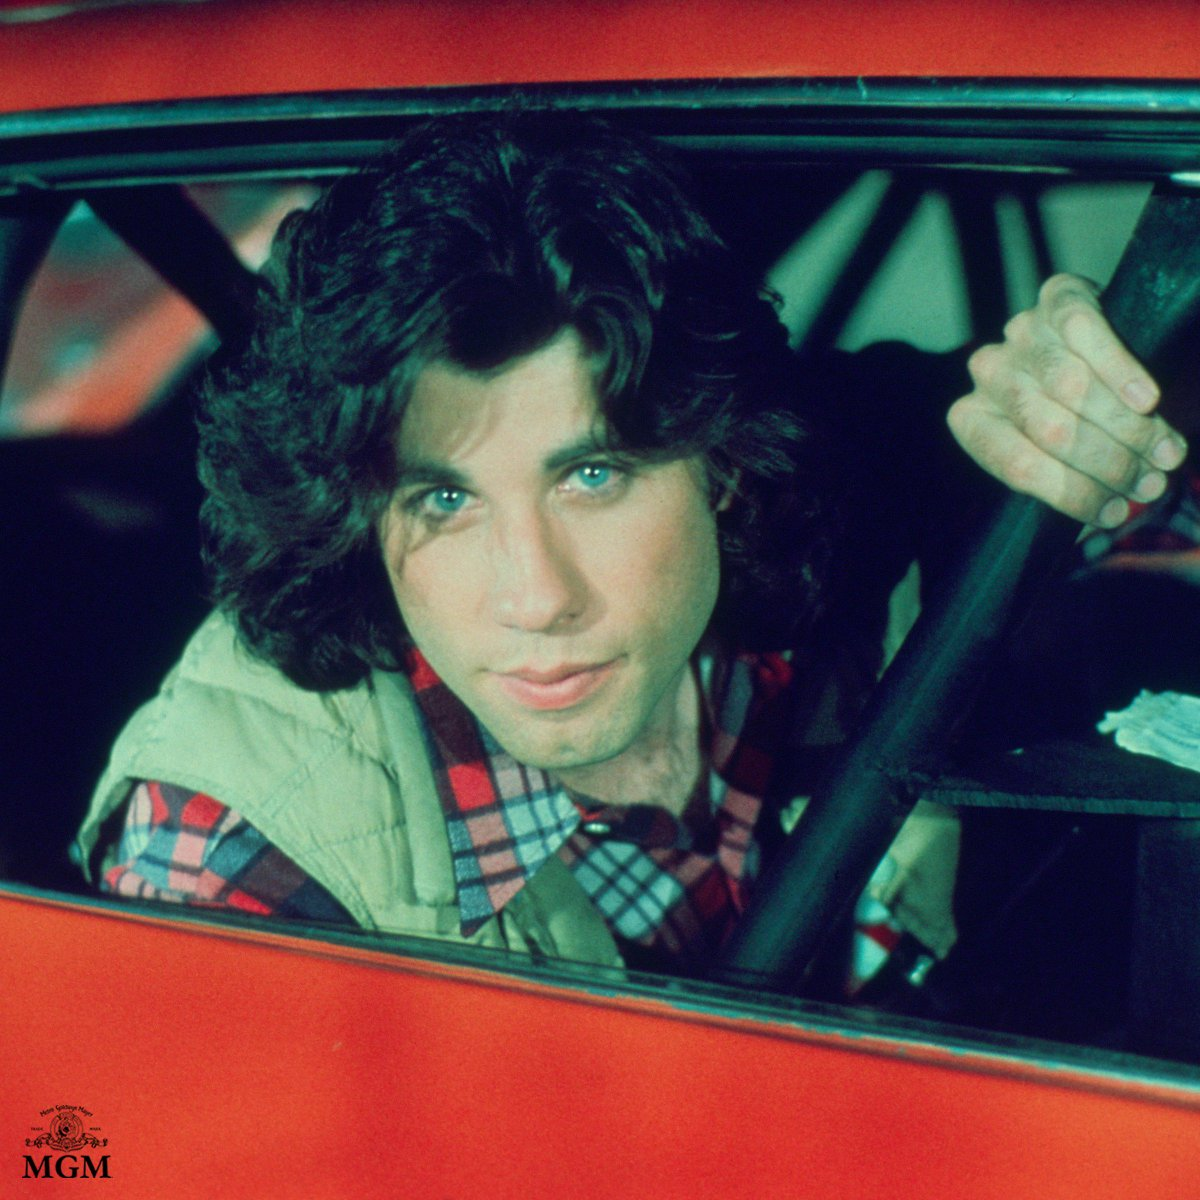 """""""Oh, Billy! Oh, Billy!"""" Wish John Travolta a very happy birthday! #Carrie <br>http://pic.twitter.com/8kYH1fr3AS"""